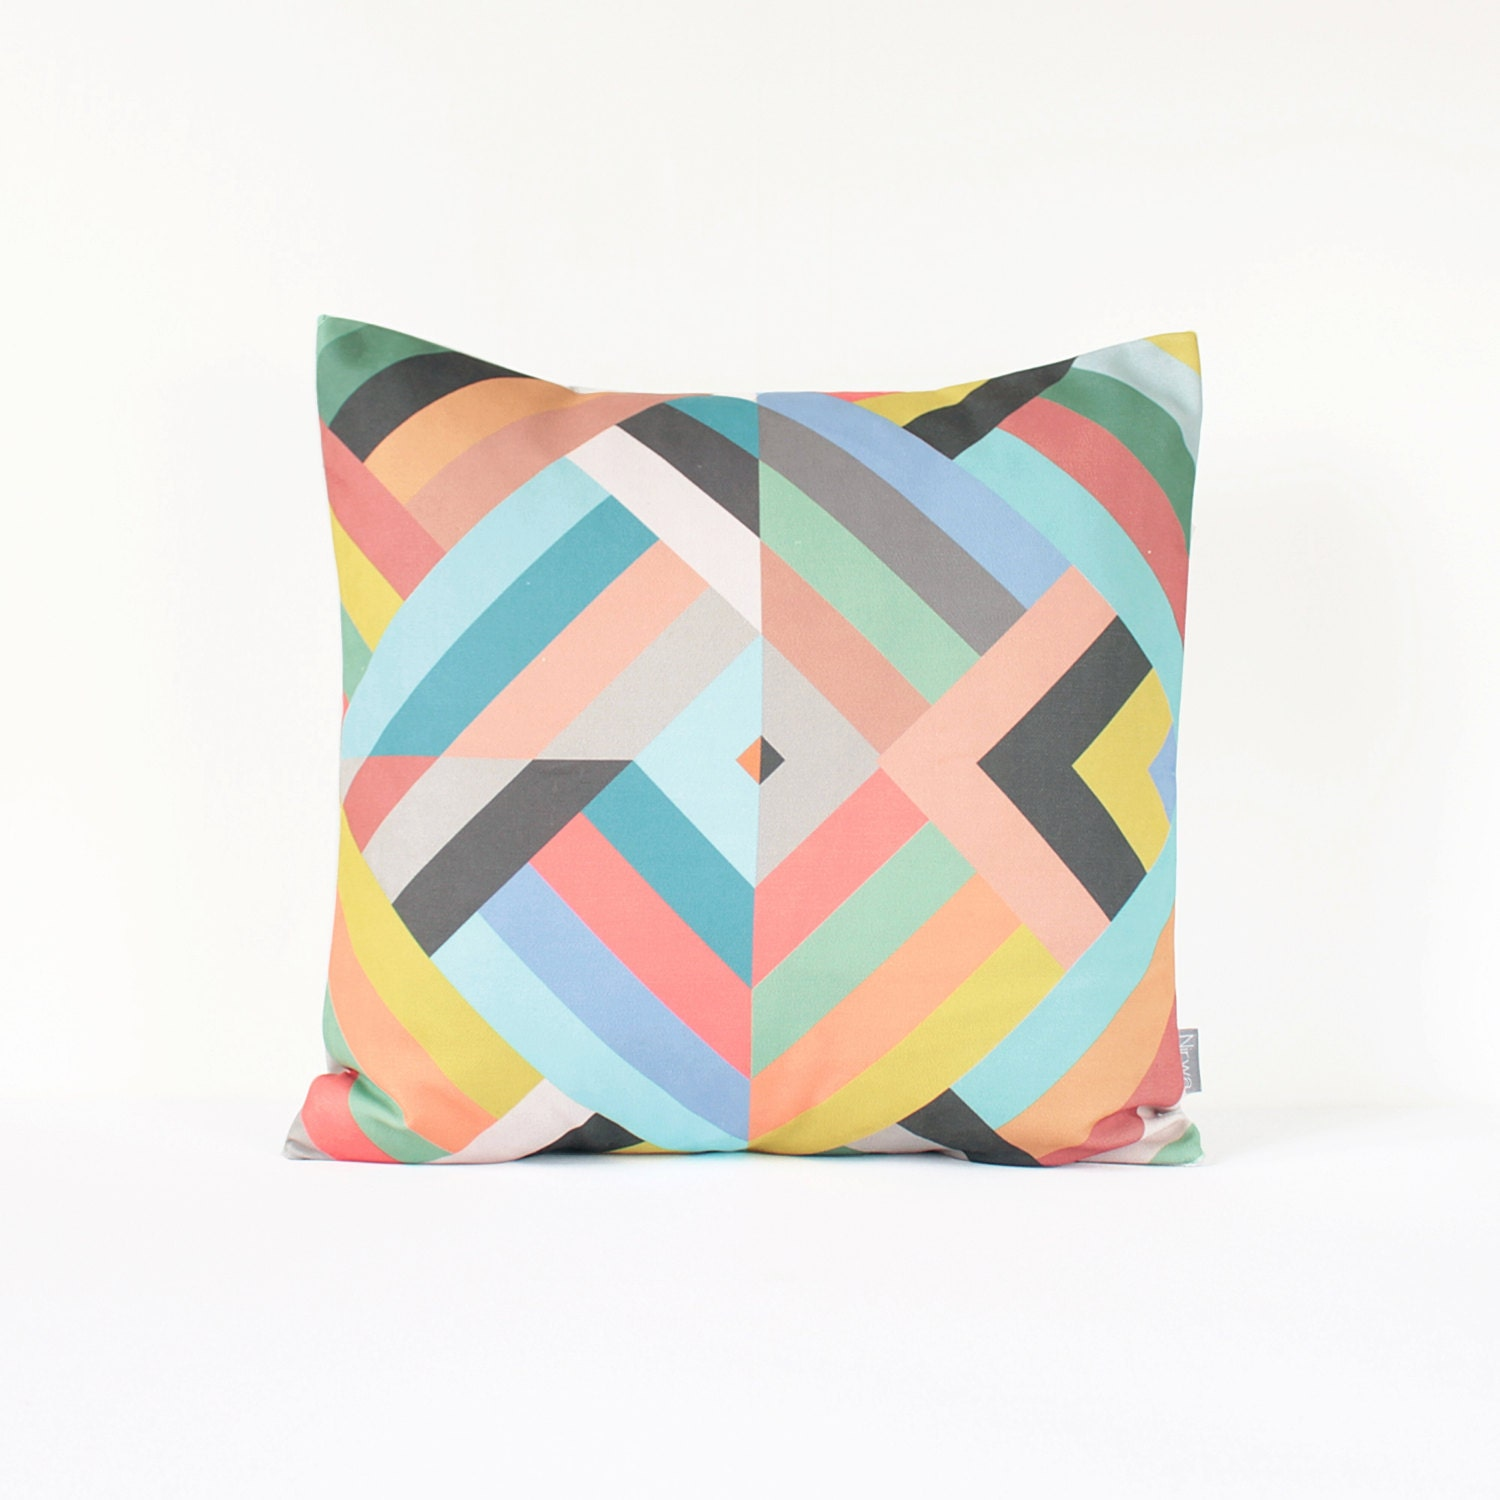 Dark Coral Throw Pillows : Geometric Decorative Pillow Cover in Pink Gray Coral Mint by Nirwa